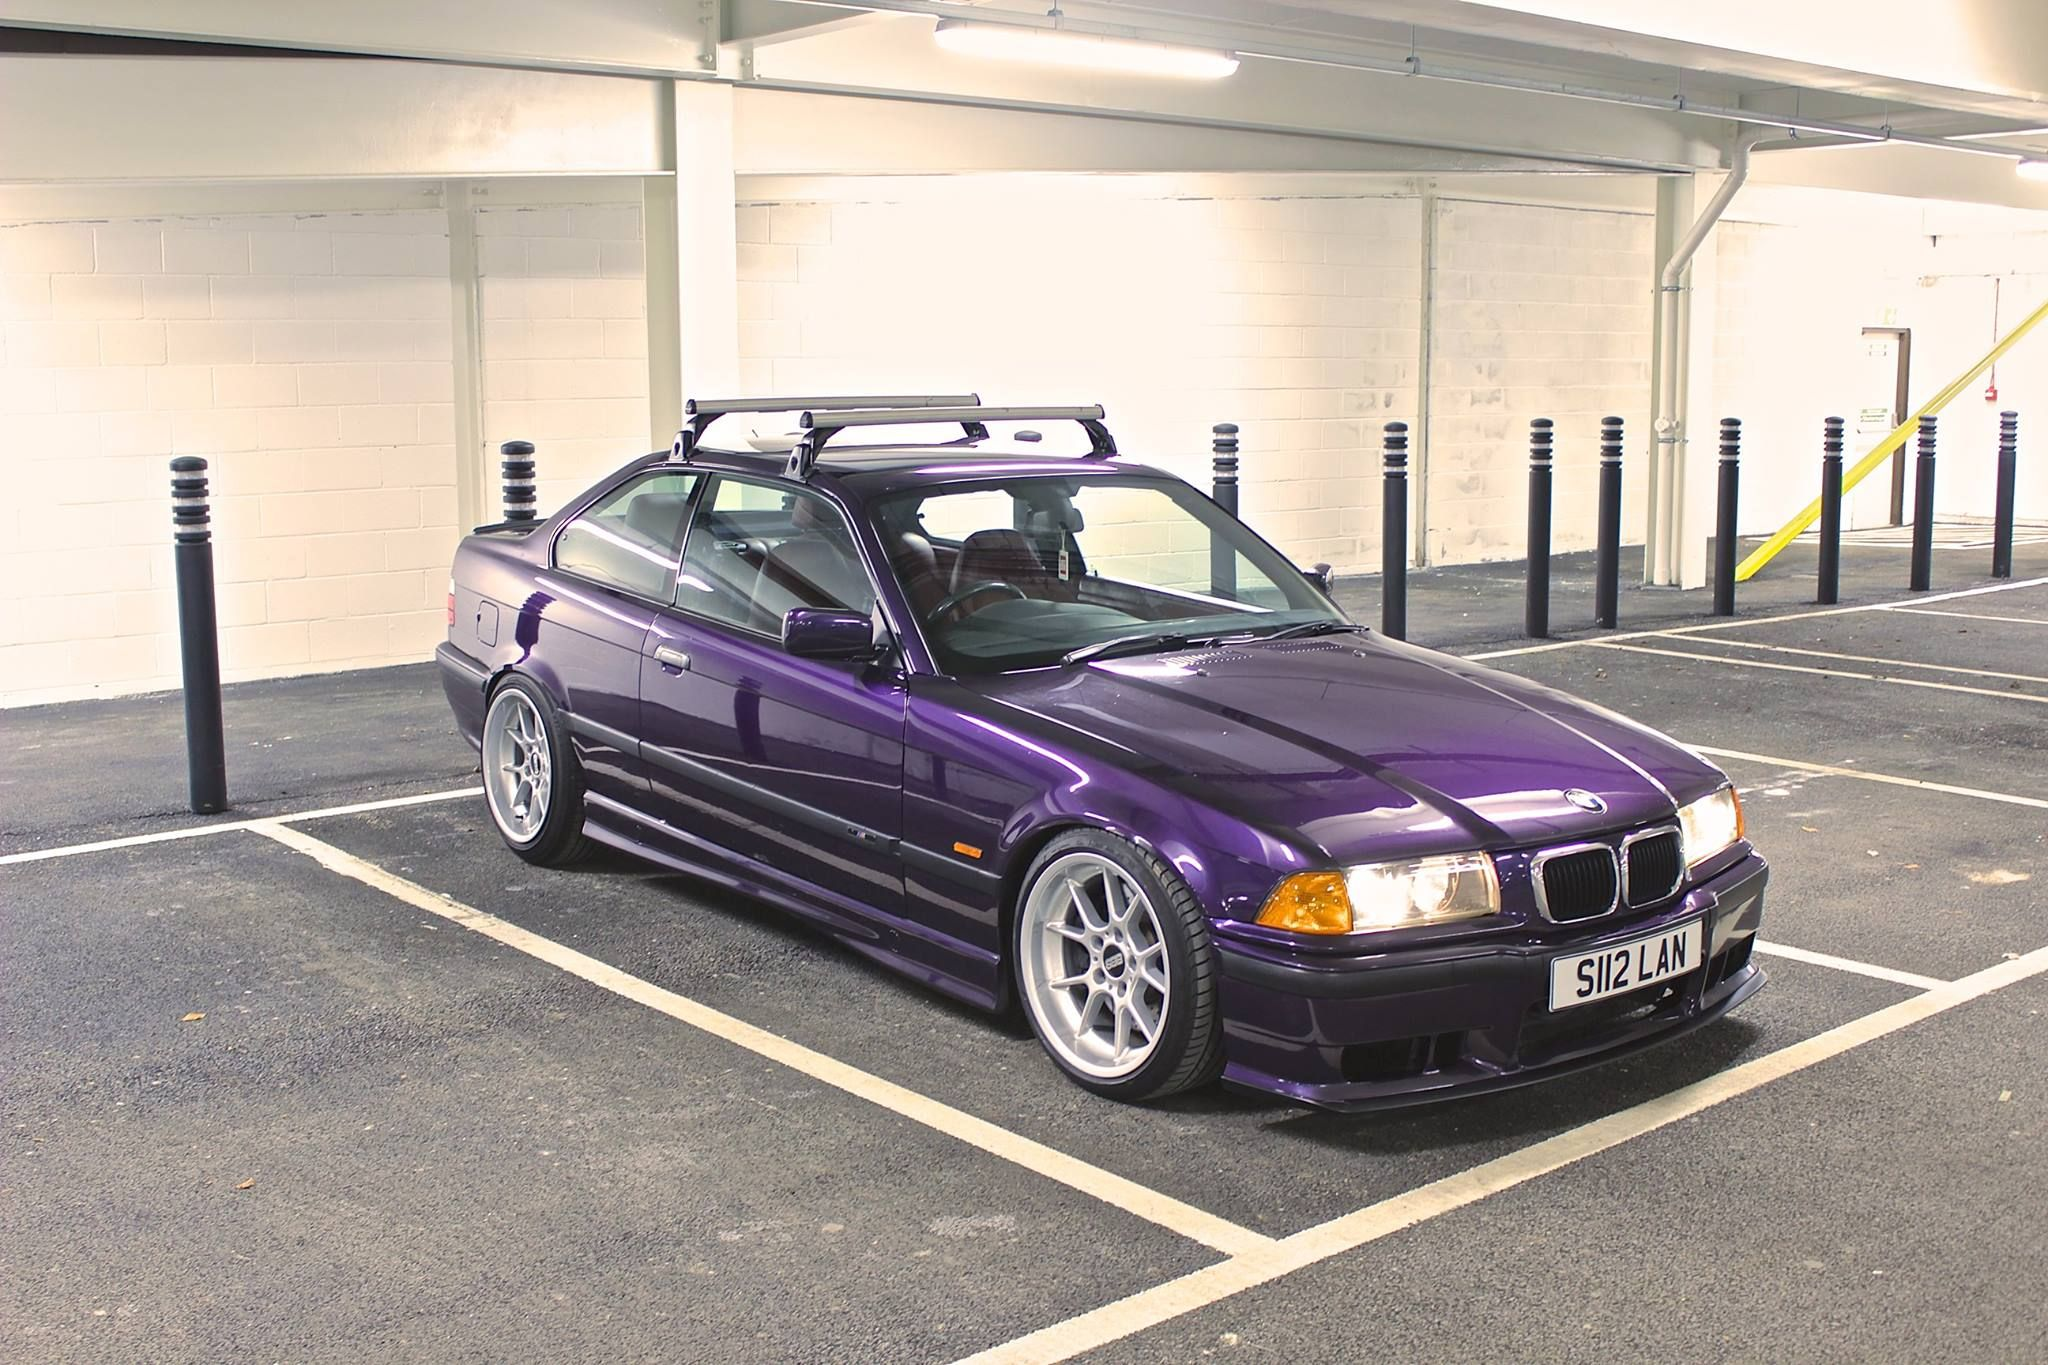 technoviolet bmw e36 coupe on classic bbs rk wheels love this colour bmw e36 culture album. Black Bedroom Furniture Sets. Home Design Ideas